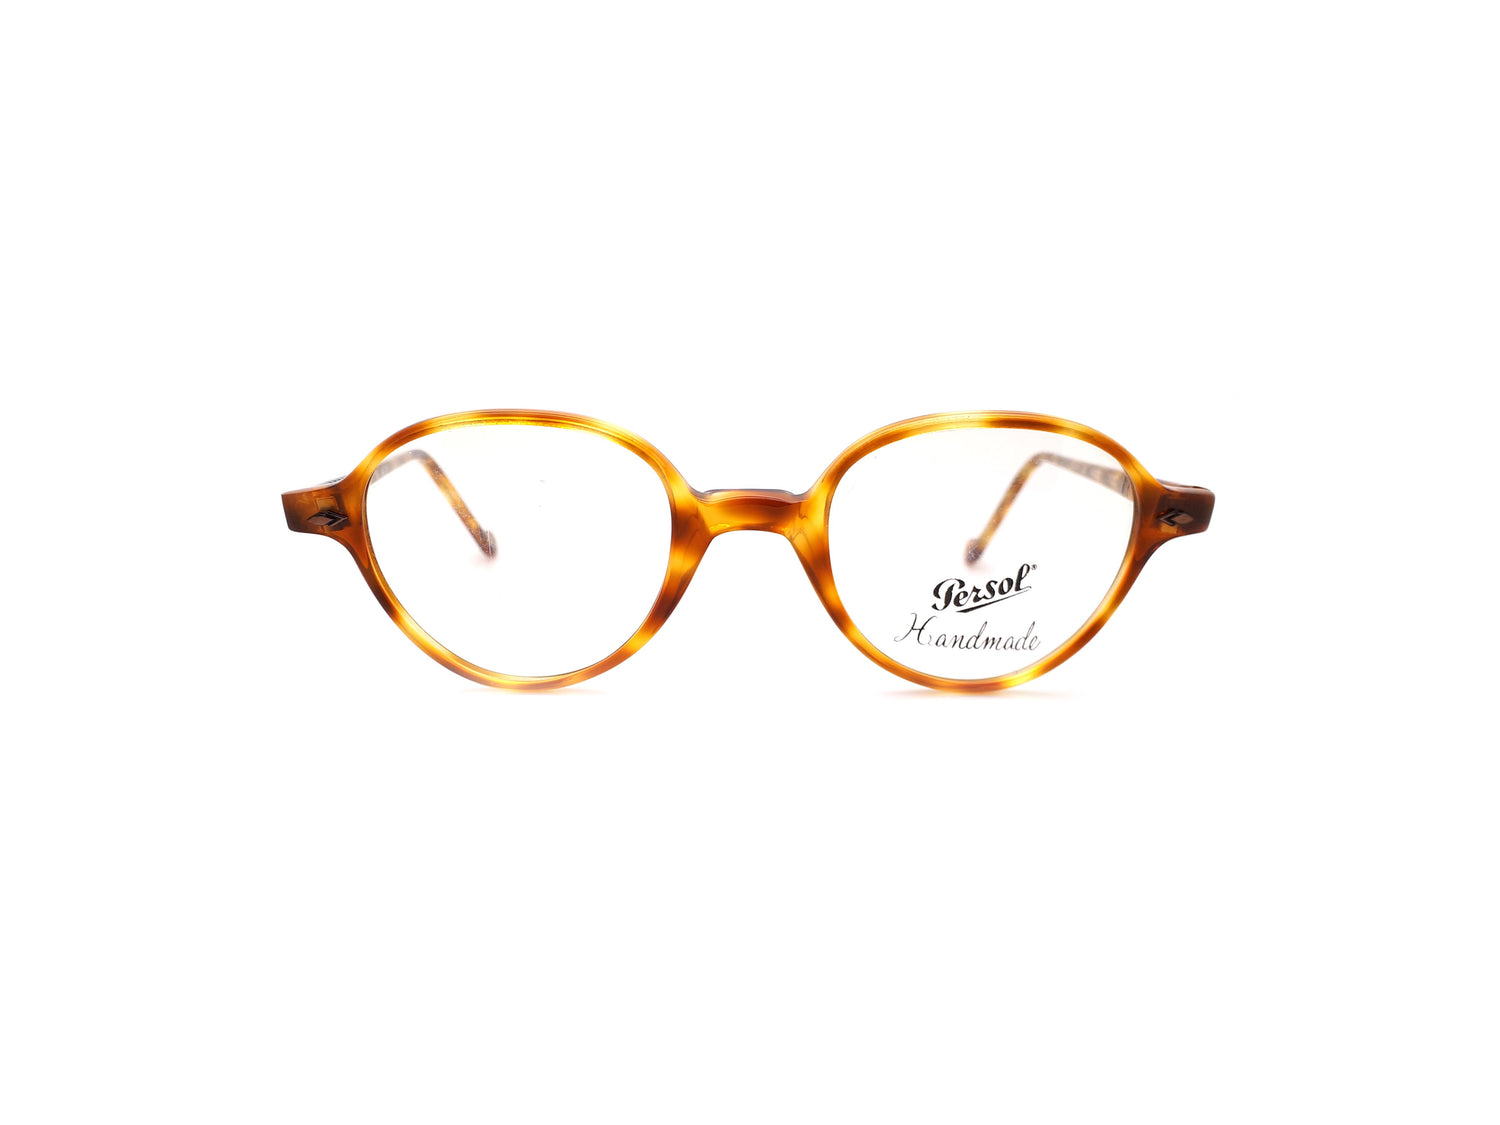 Persol 756 41 147